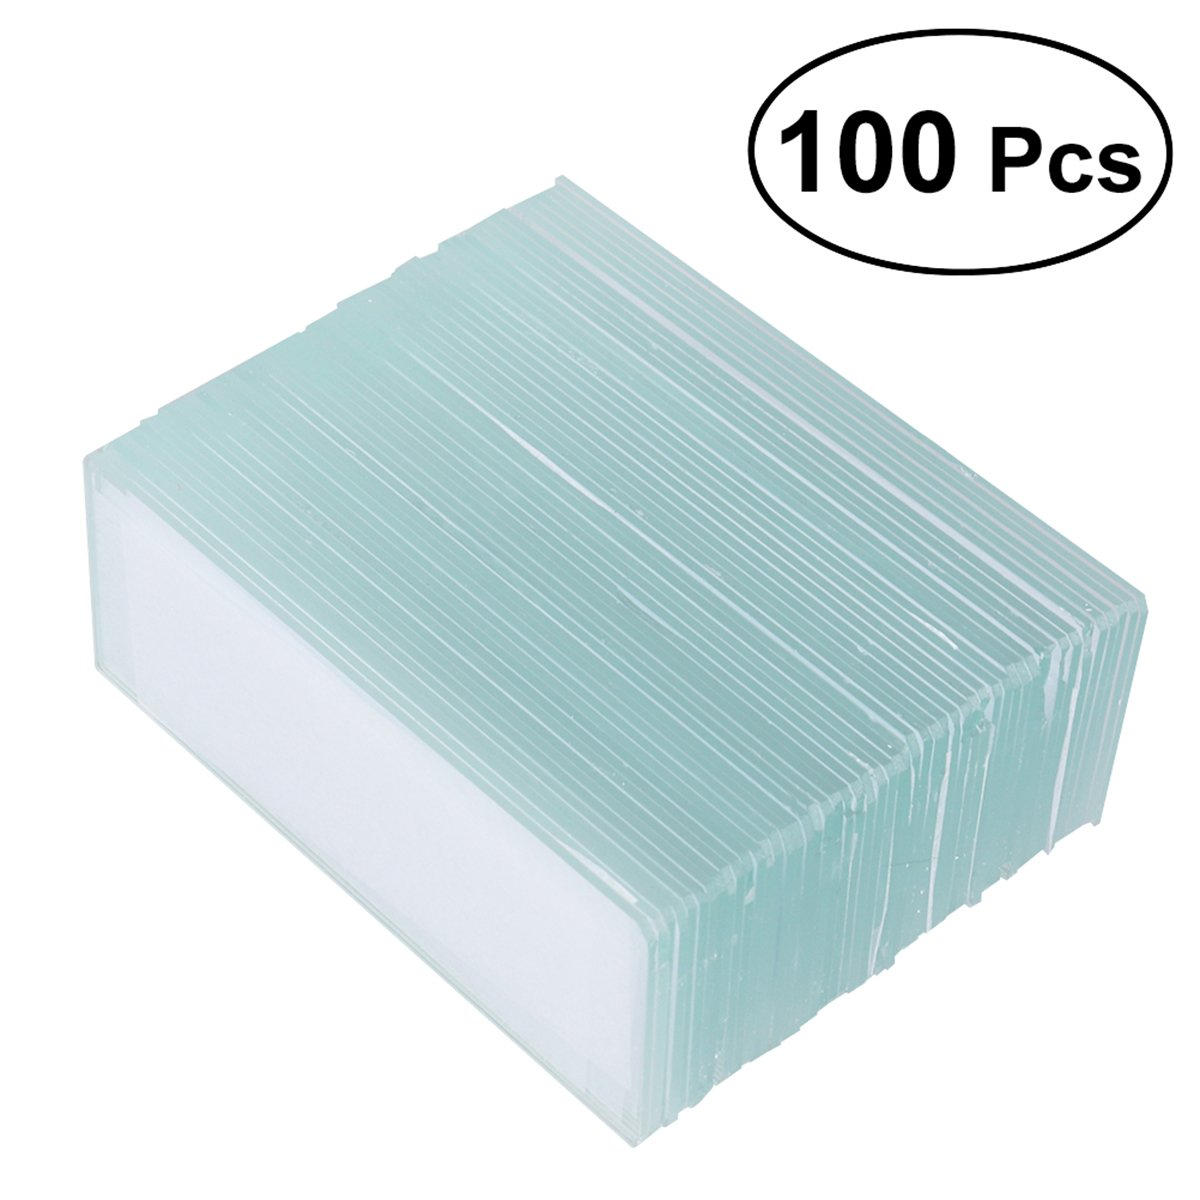 UKCOCO 100 Pieces Microscope Blank Slides 100 Pieces Square Cover Slips Cover Glass